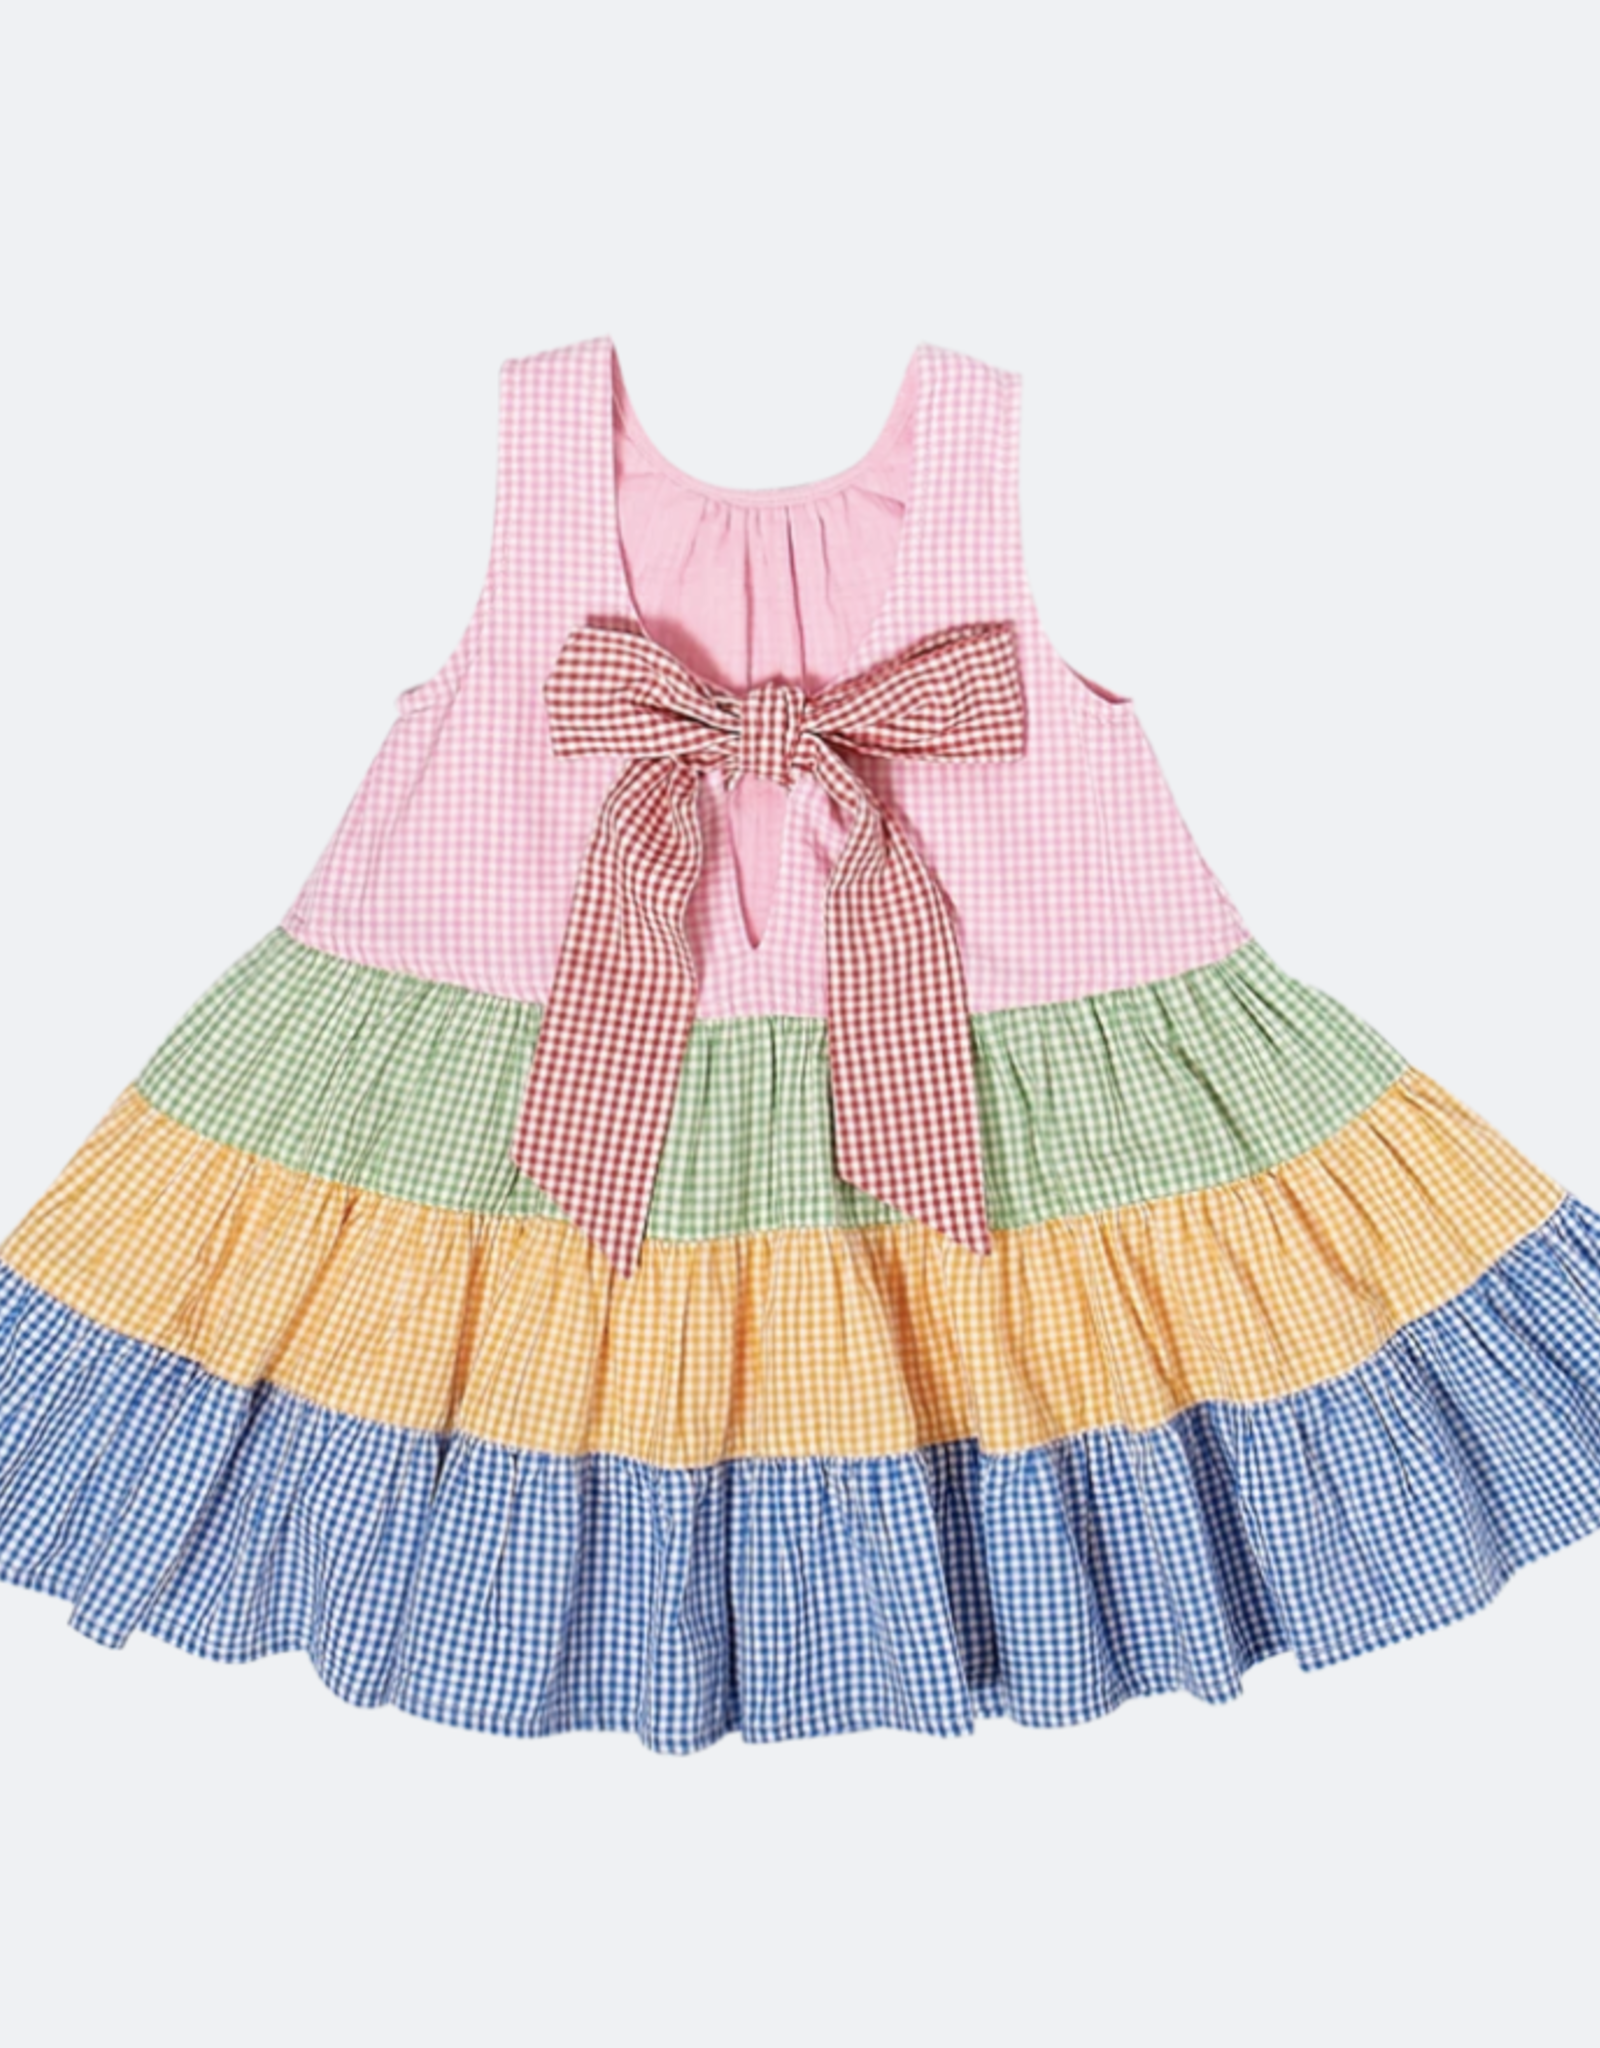 Pink Chicken pearl dress- mixed gingham